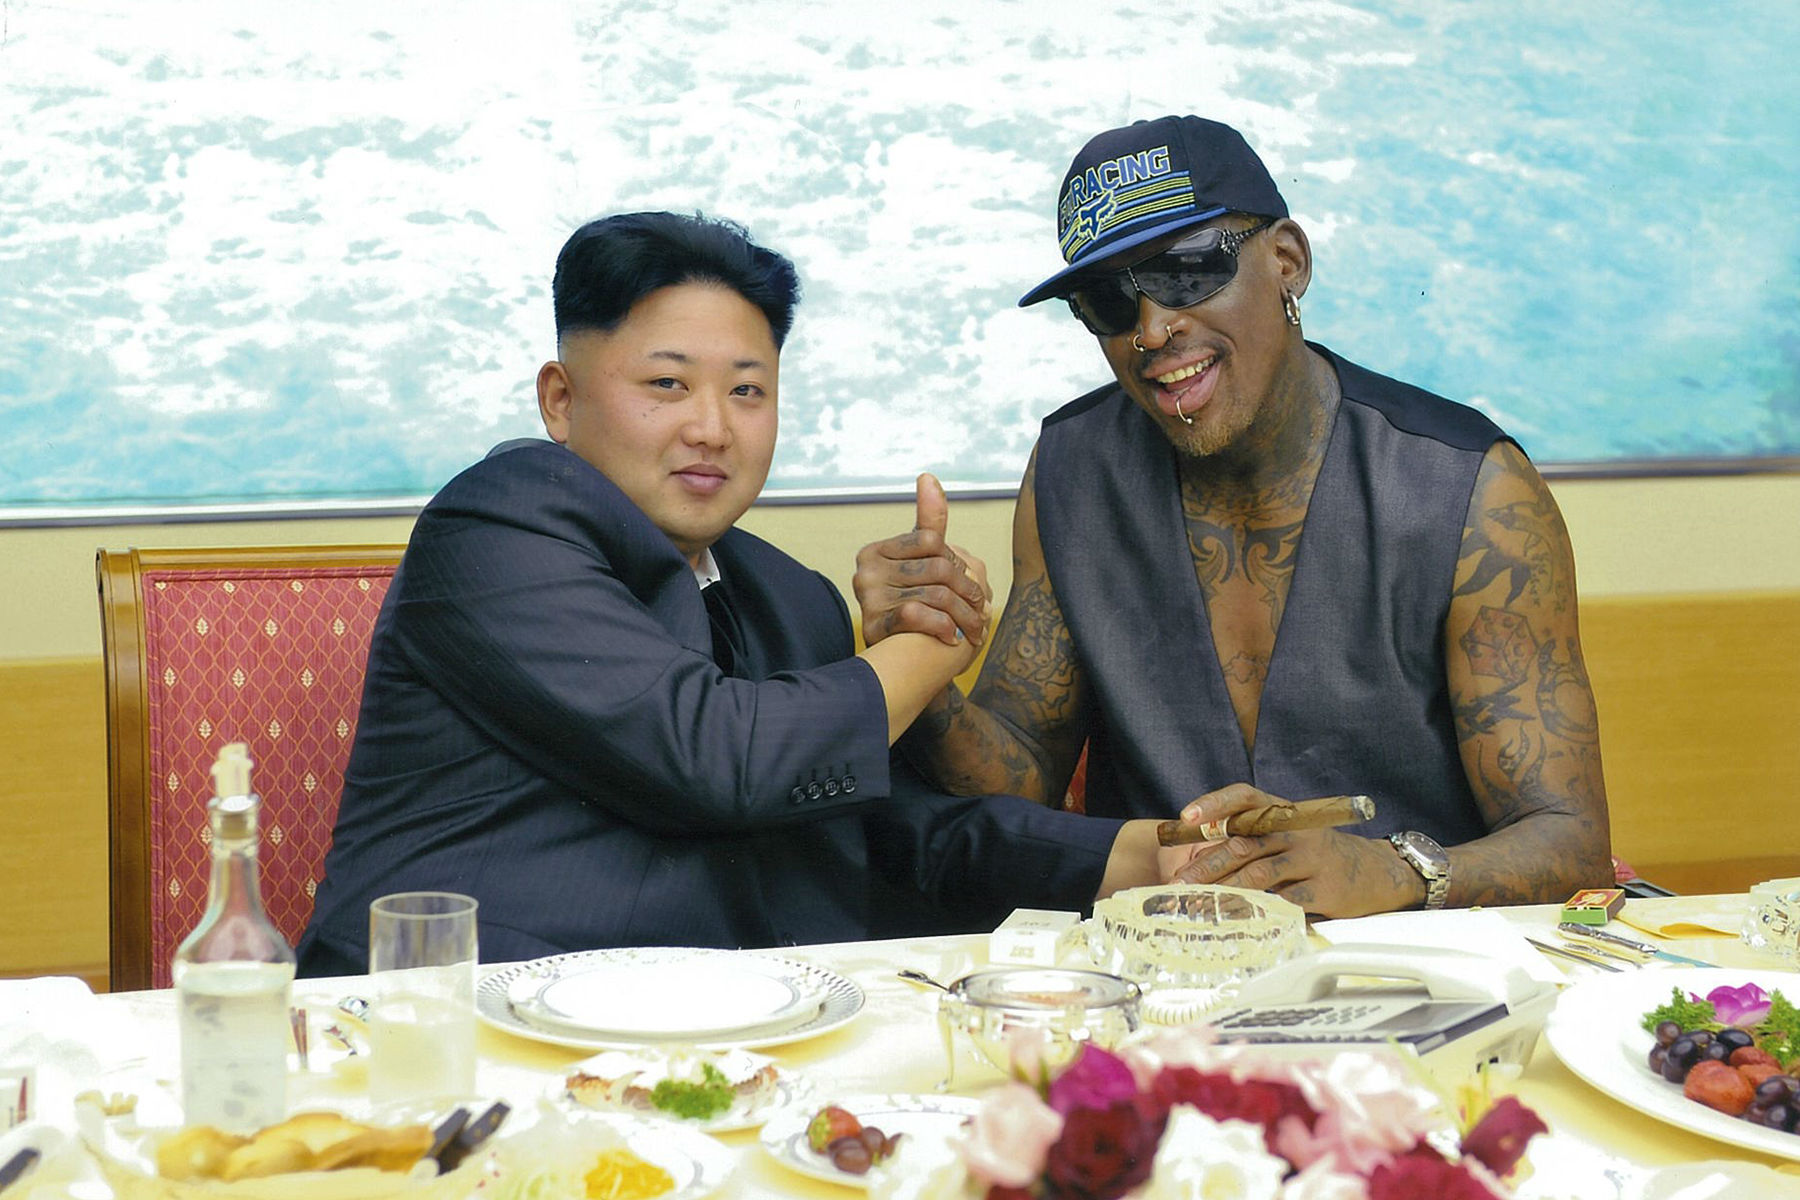 Rodman Corea del Norte Estados Unidos Trump Video Kim Jong-un